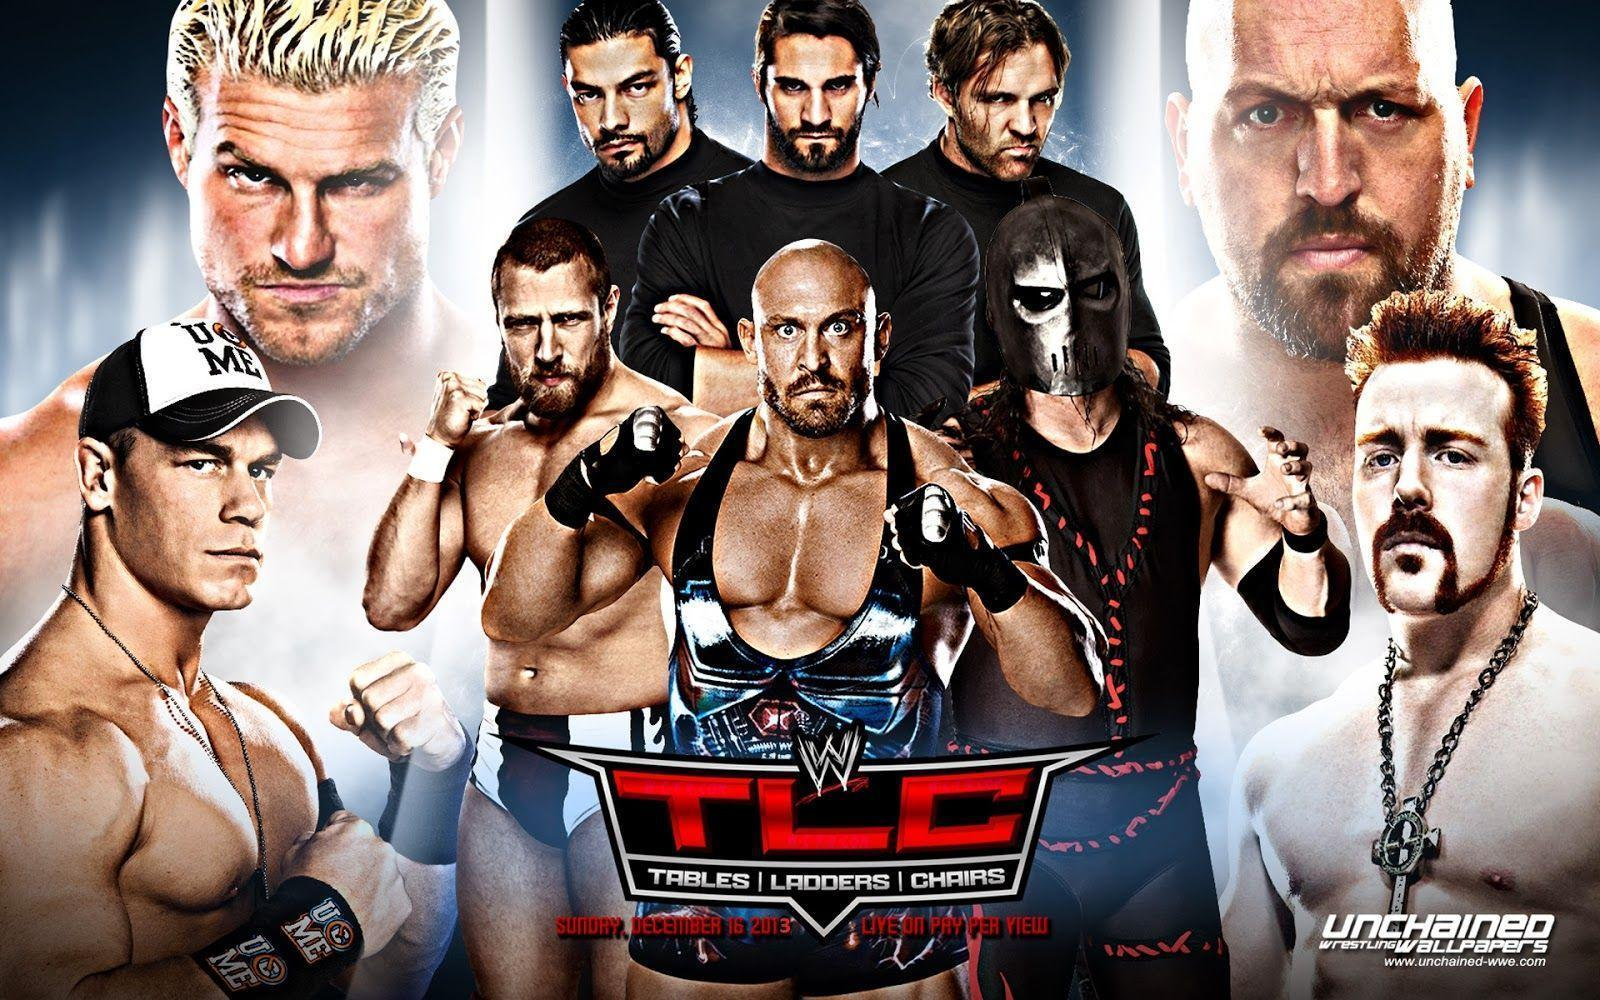 Wwe tables ladders and chairs 2013 poster - Wwe Tlc 2013 Hd Wallpapers Blog